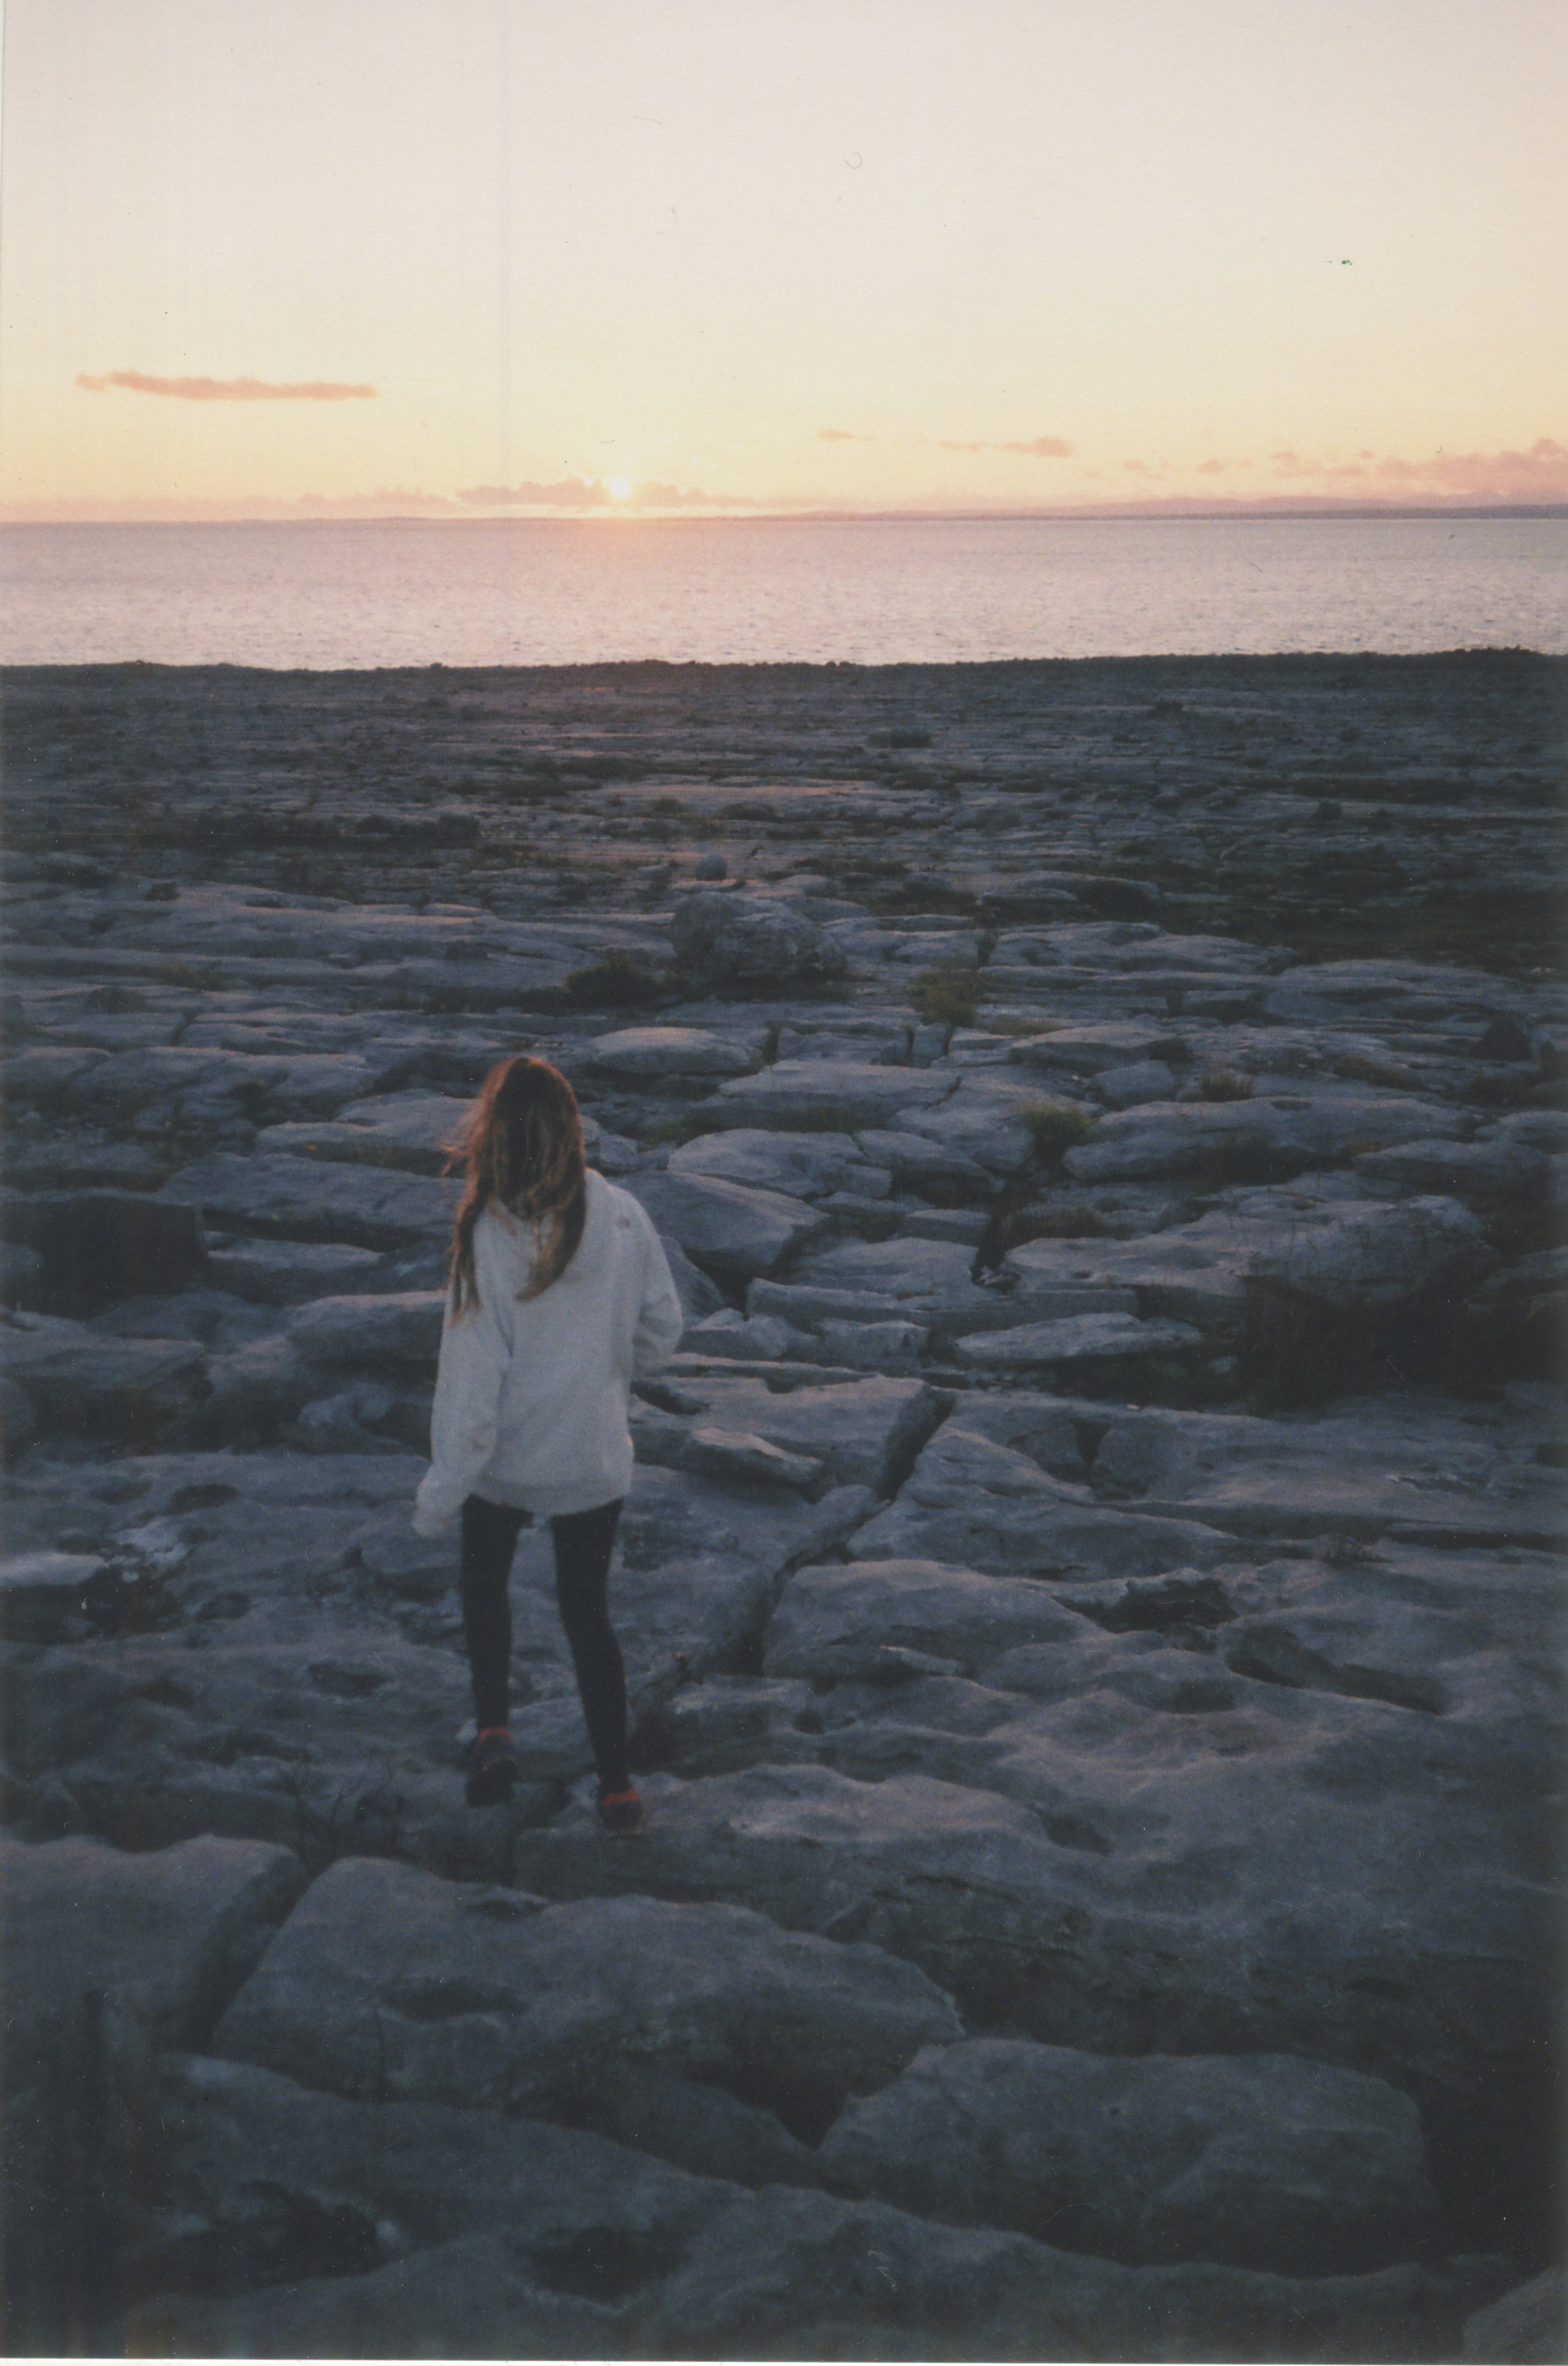 Off to find some seaweed, the sunset on the Wild Atlantic Way is something special..